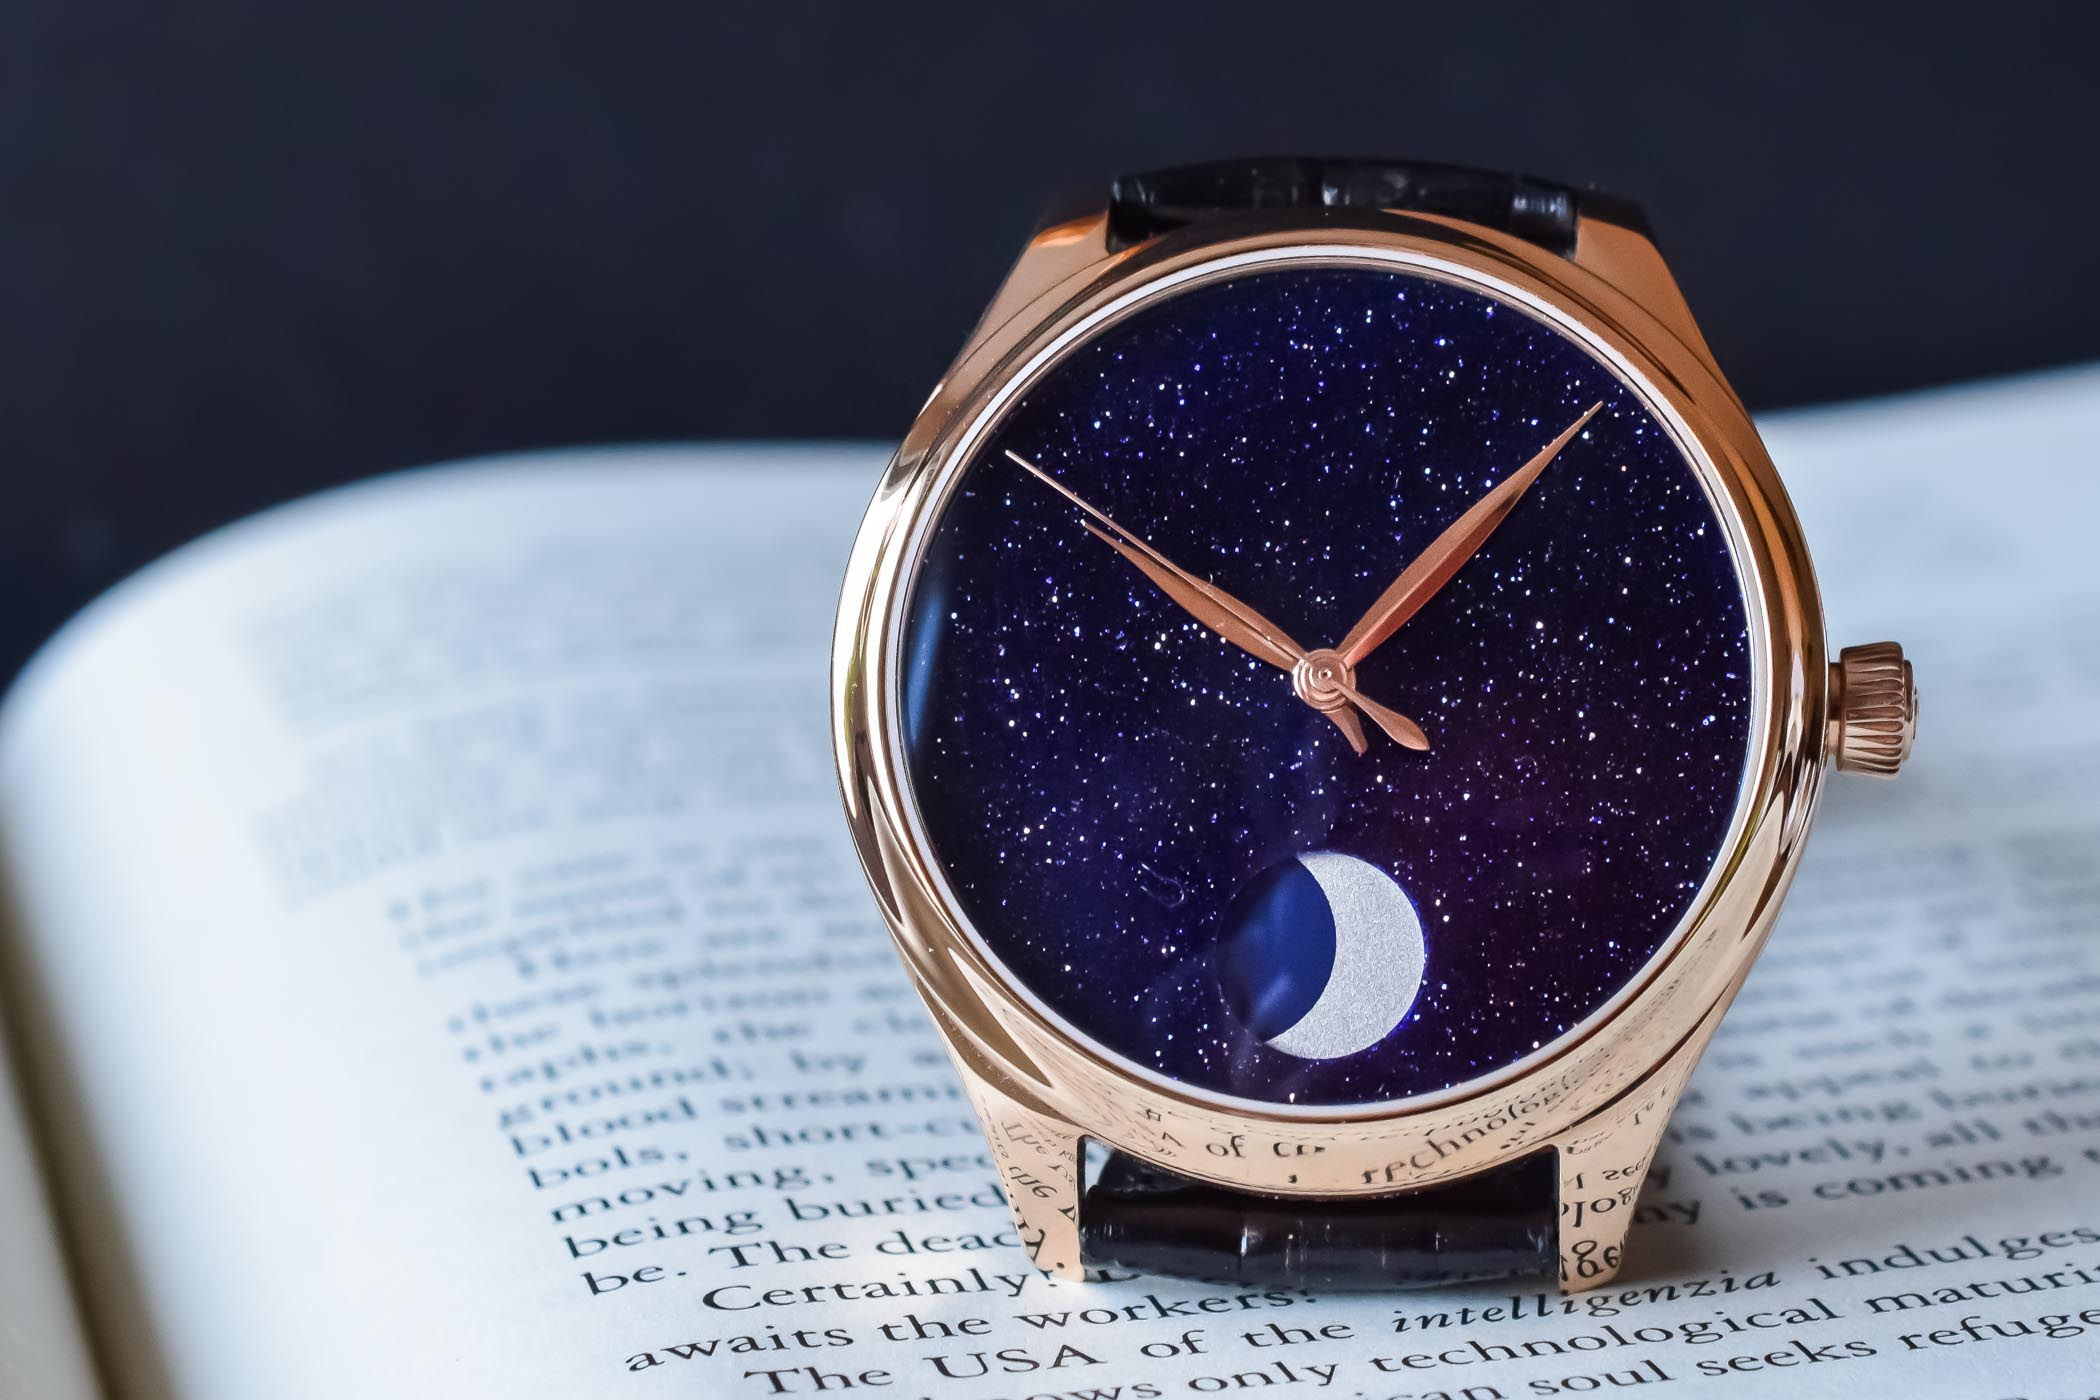 https://k8q7r7a2.stackpathcdn.com/wp-content/uploads/2019/10/H.-Moser-Cie-Endeavour-Perpetual-Moon-Concept-Aventurine-Hands-On-10.jpg